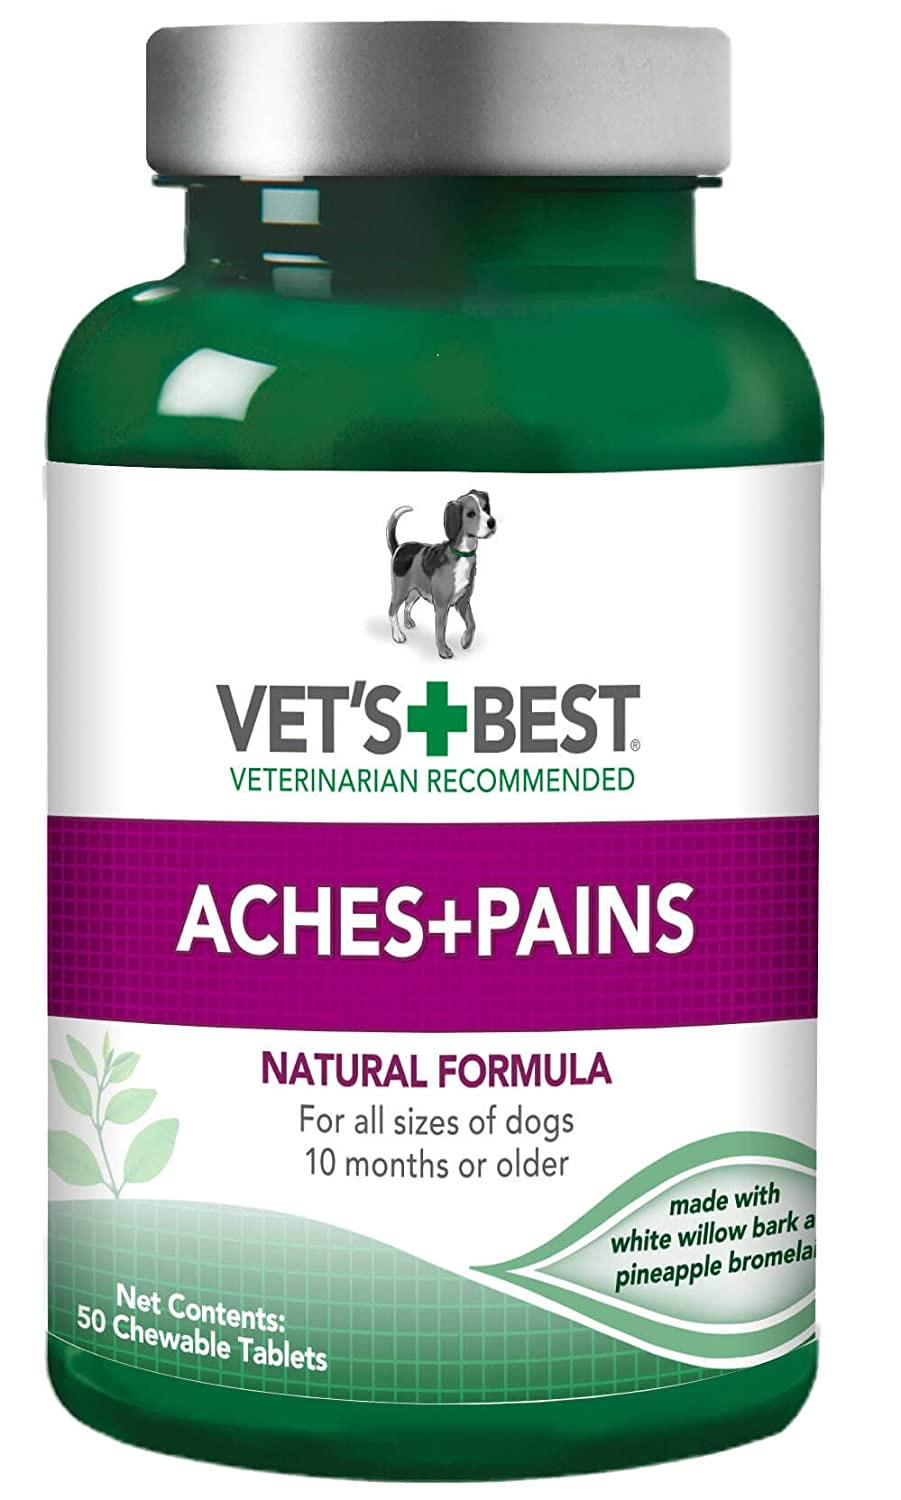 Vet's Best Aspirin Free Aches & Pains Dog Supplements